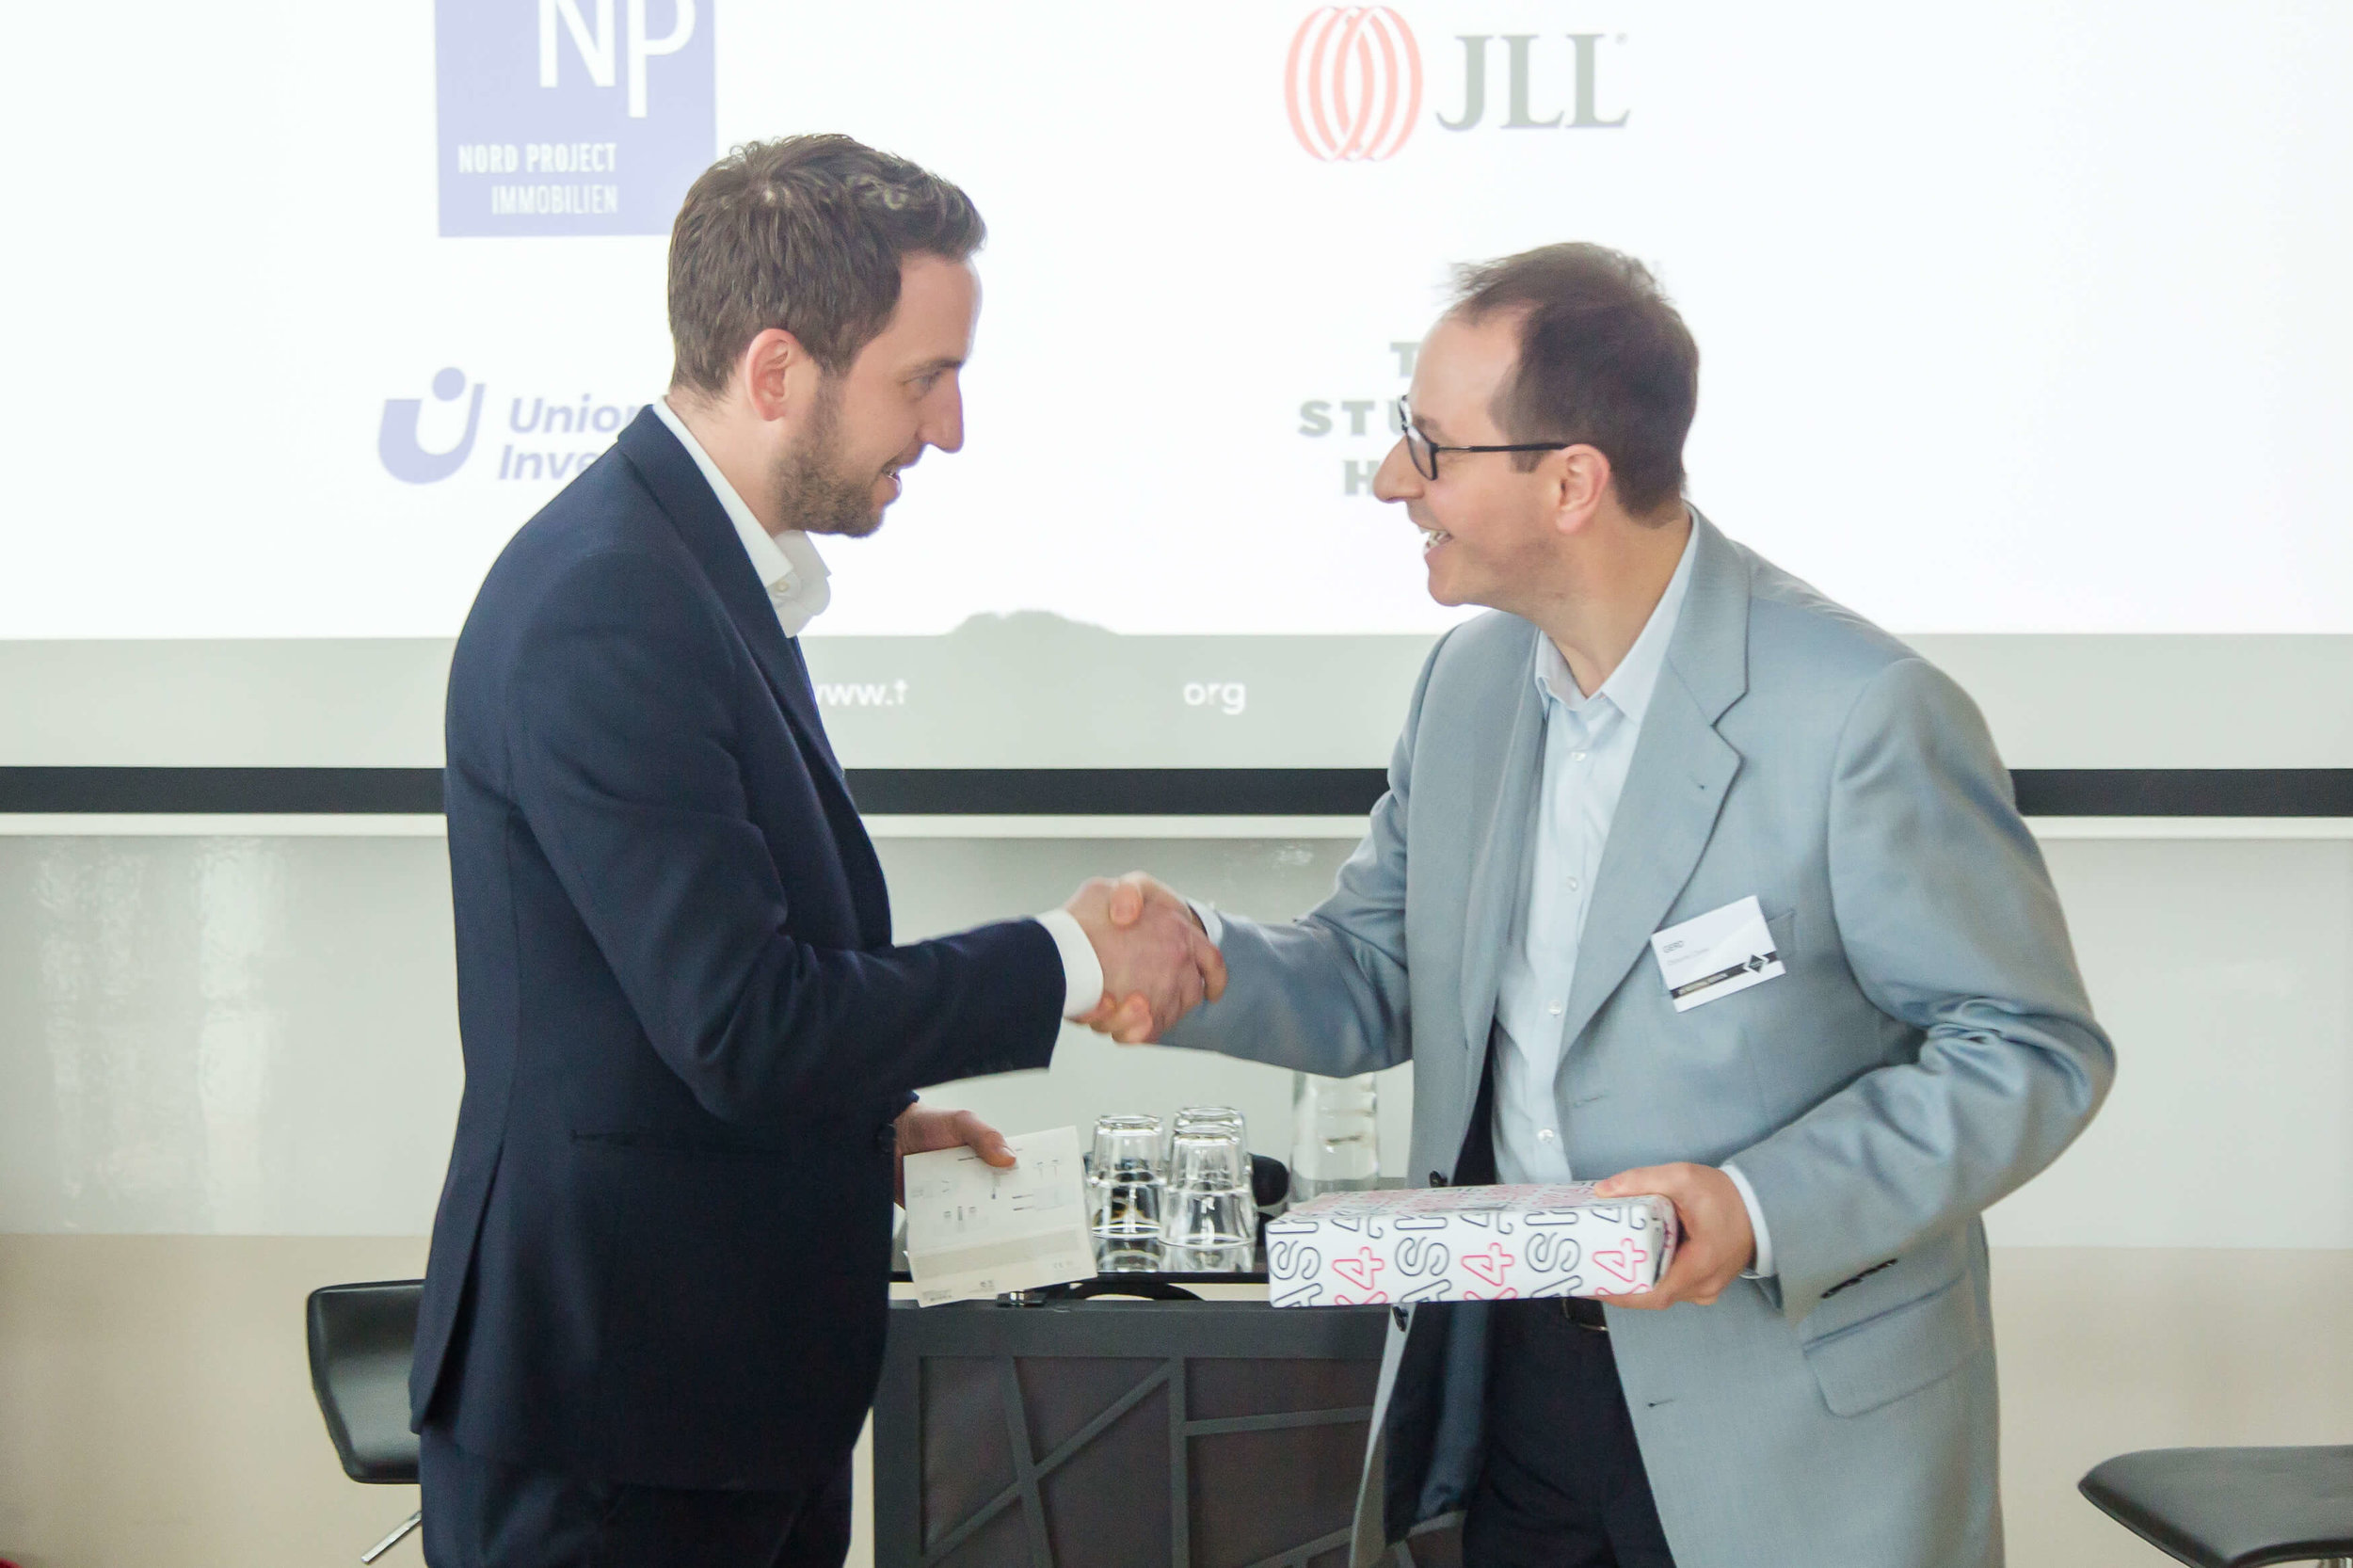 Billy Kontoulis from ASK4 presents the iPad to Gerd Hoor from Osborne Clarke.